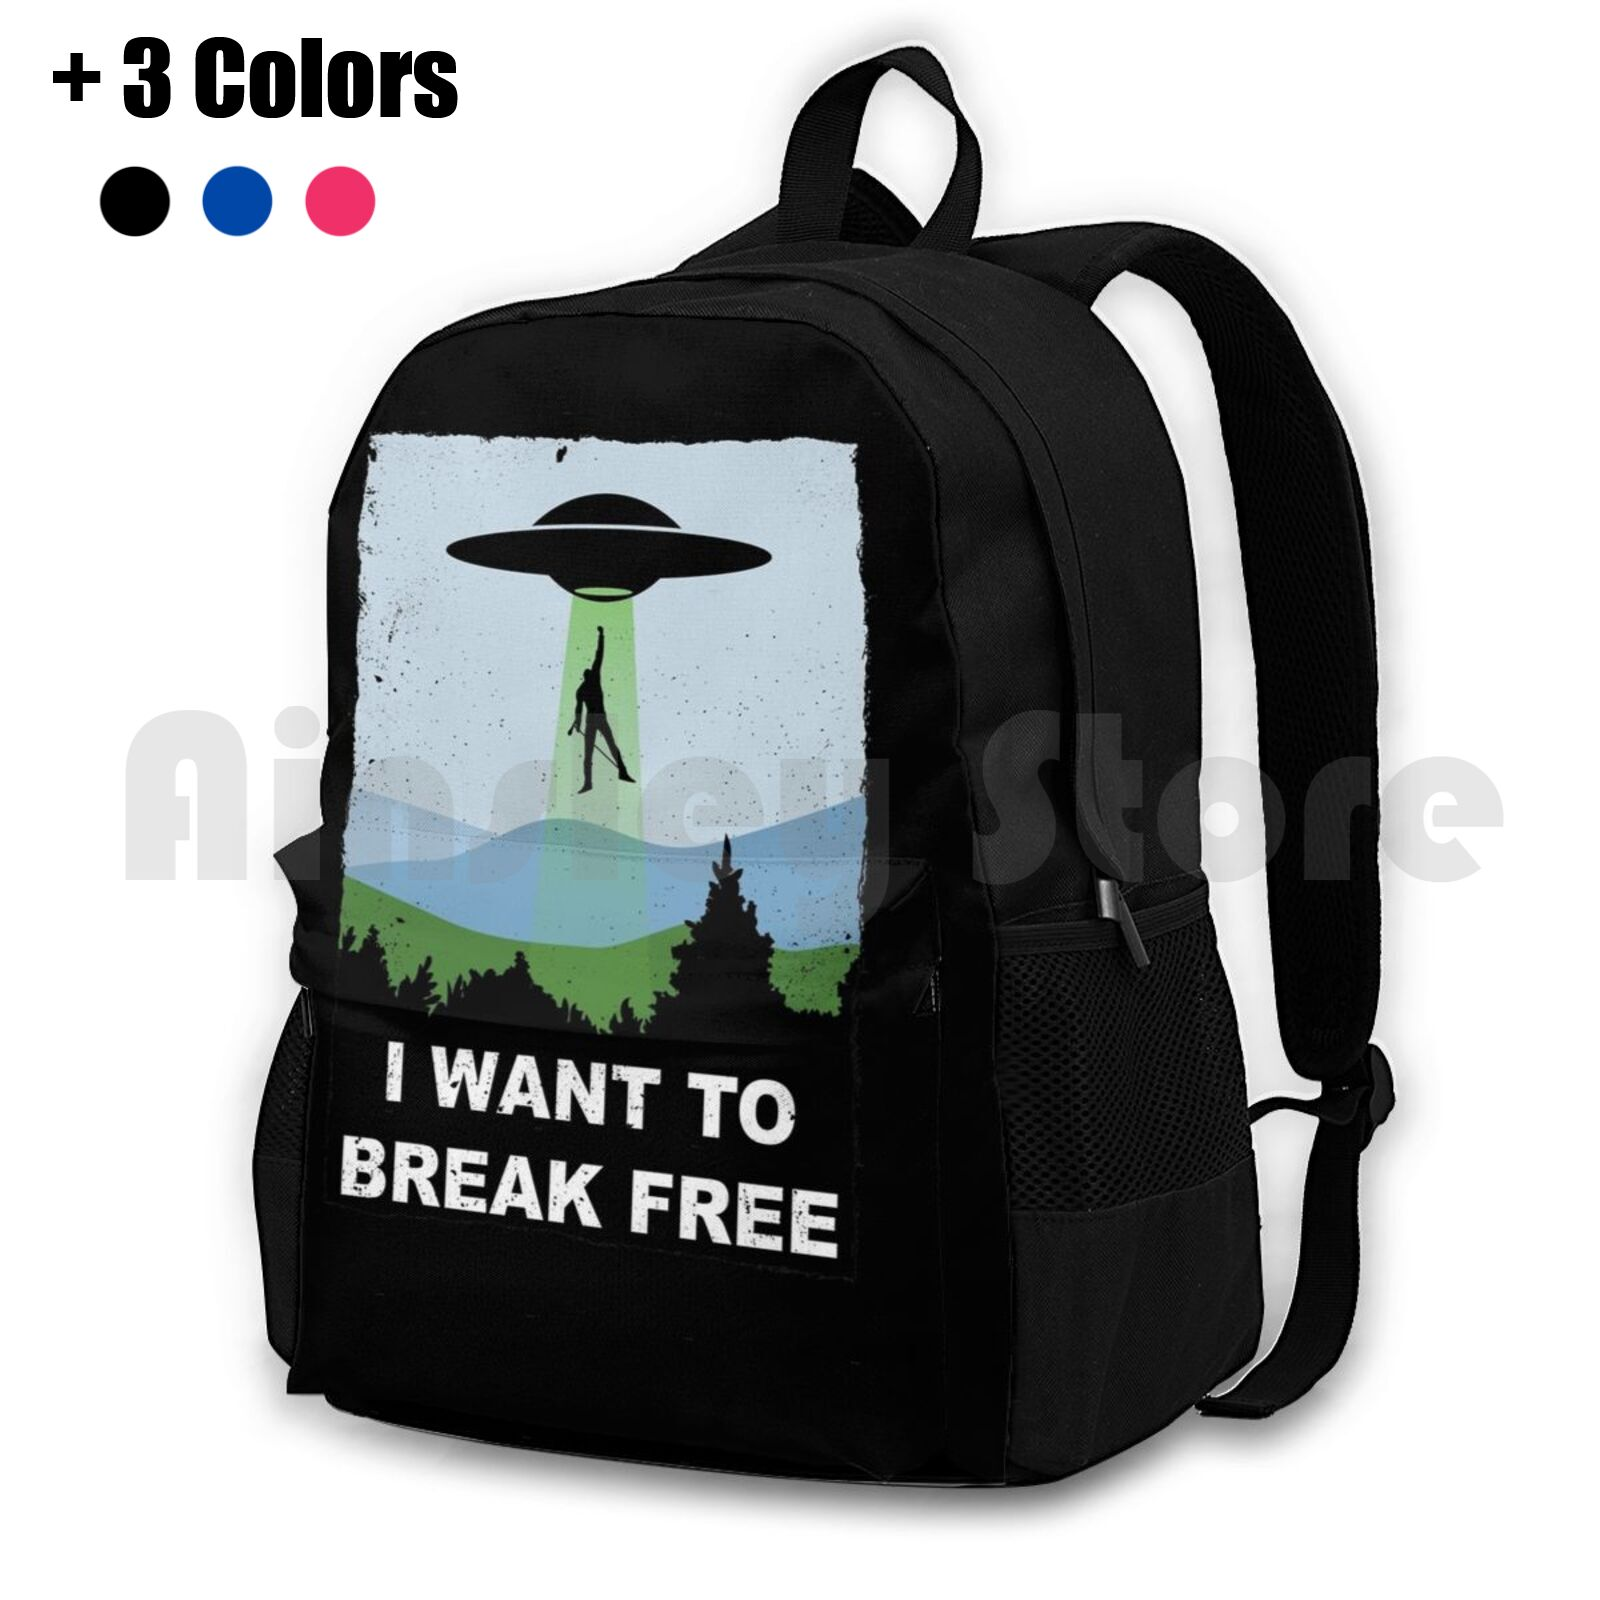 I Want To Break Free-Freddie Returns To Outdoor Hiking Backpack Riding Climbing Sports Bag Queen Freddie Brian May Bohemian